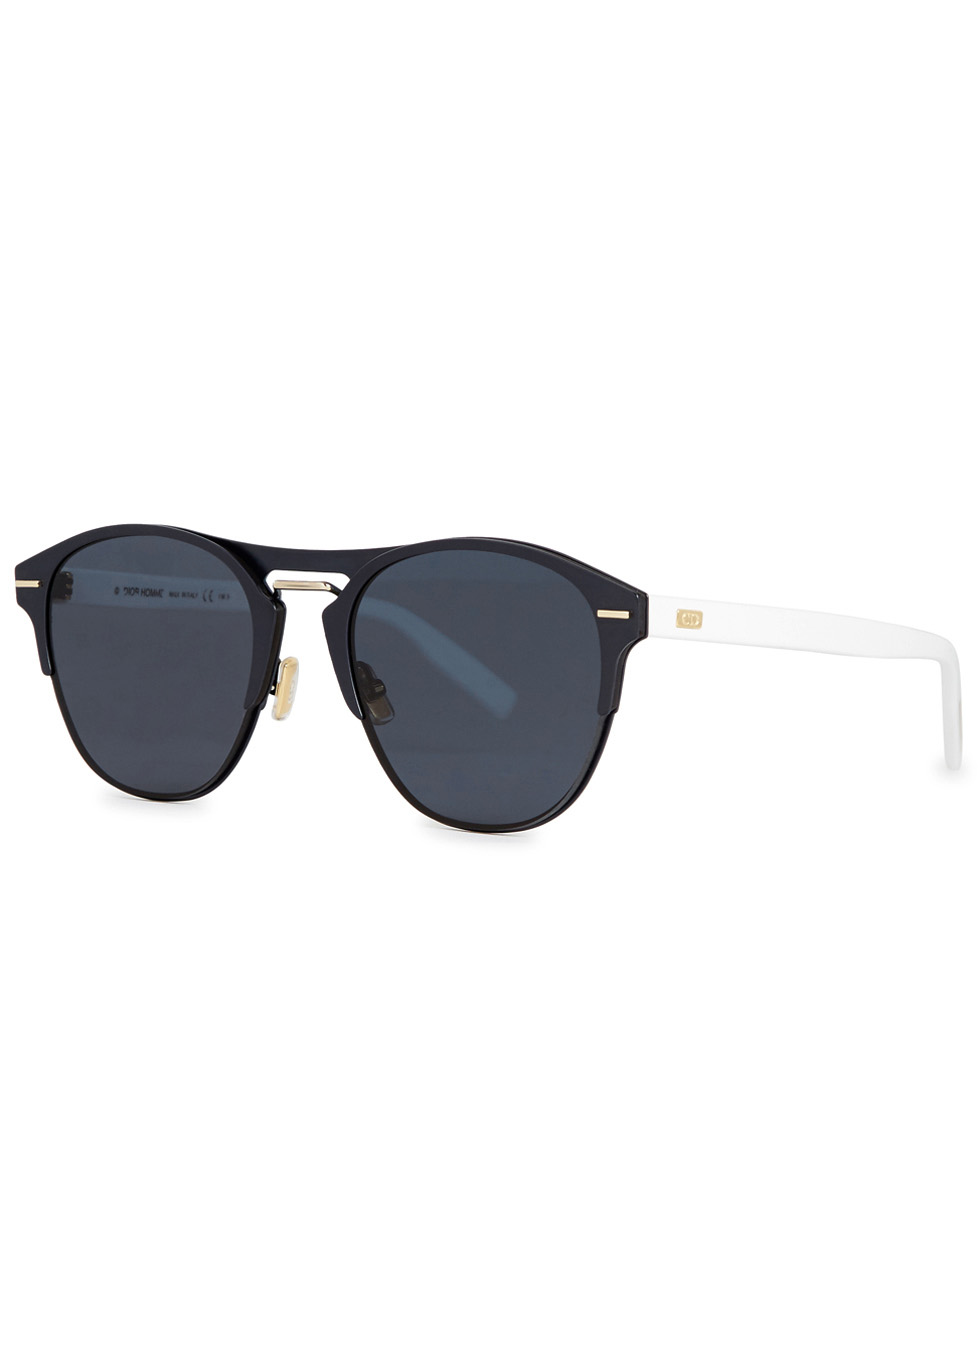 DiorChrono clubmaster-style sunglasses - Dior Homme